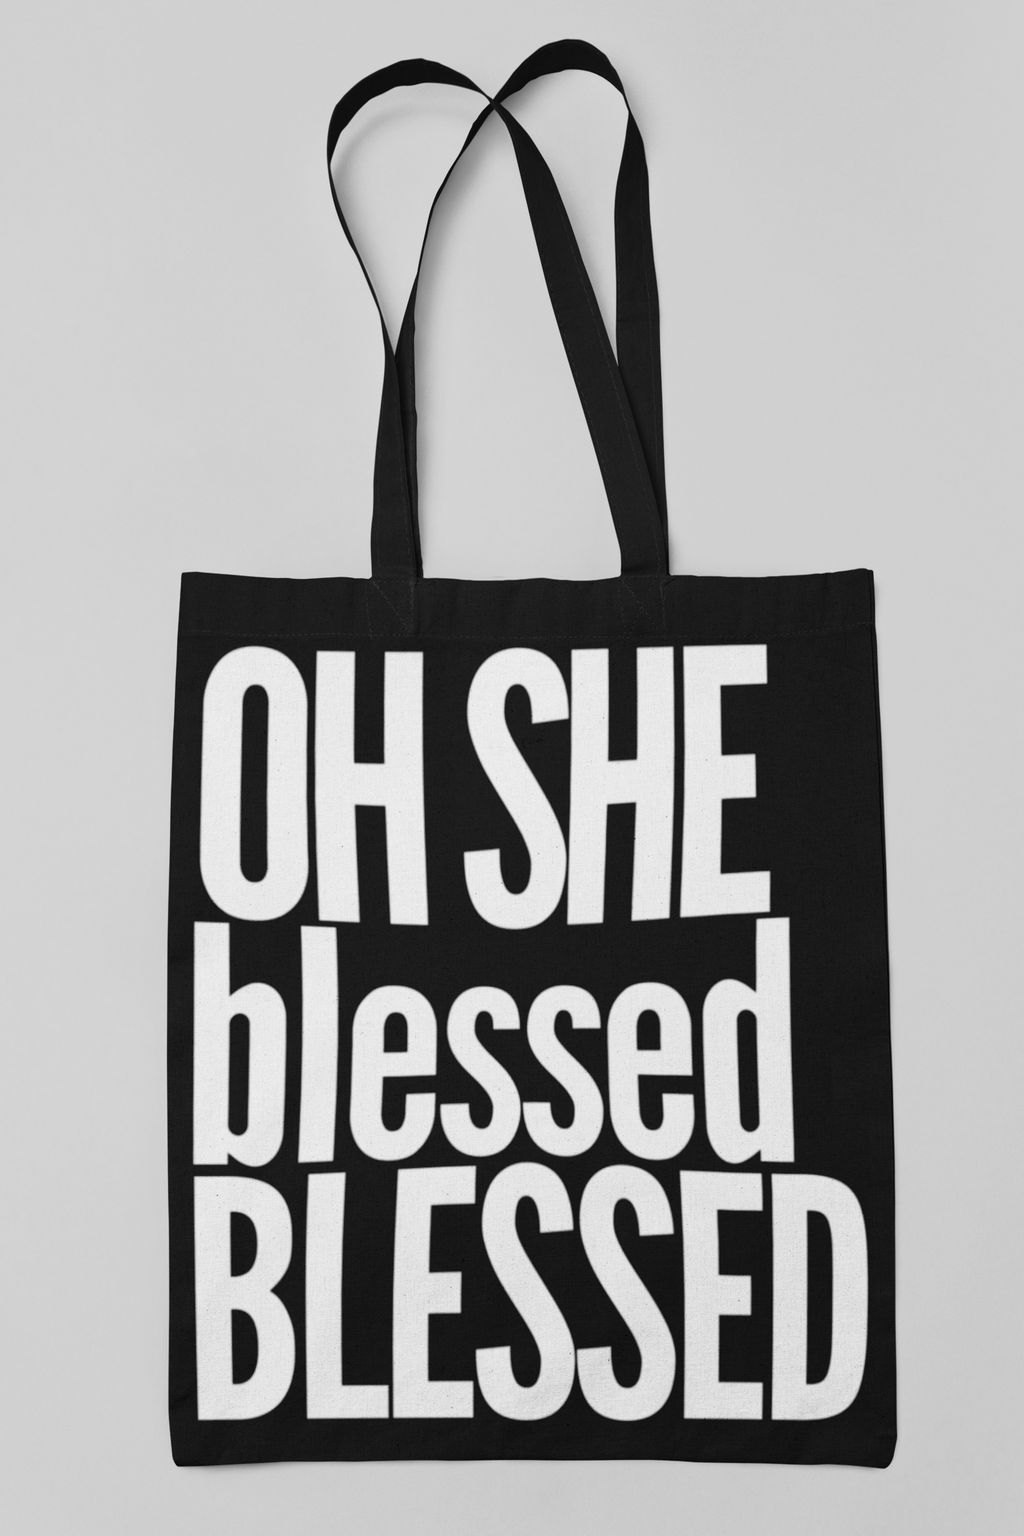 Oh she blessed BLESSED tote bag